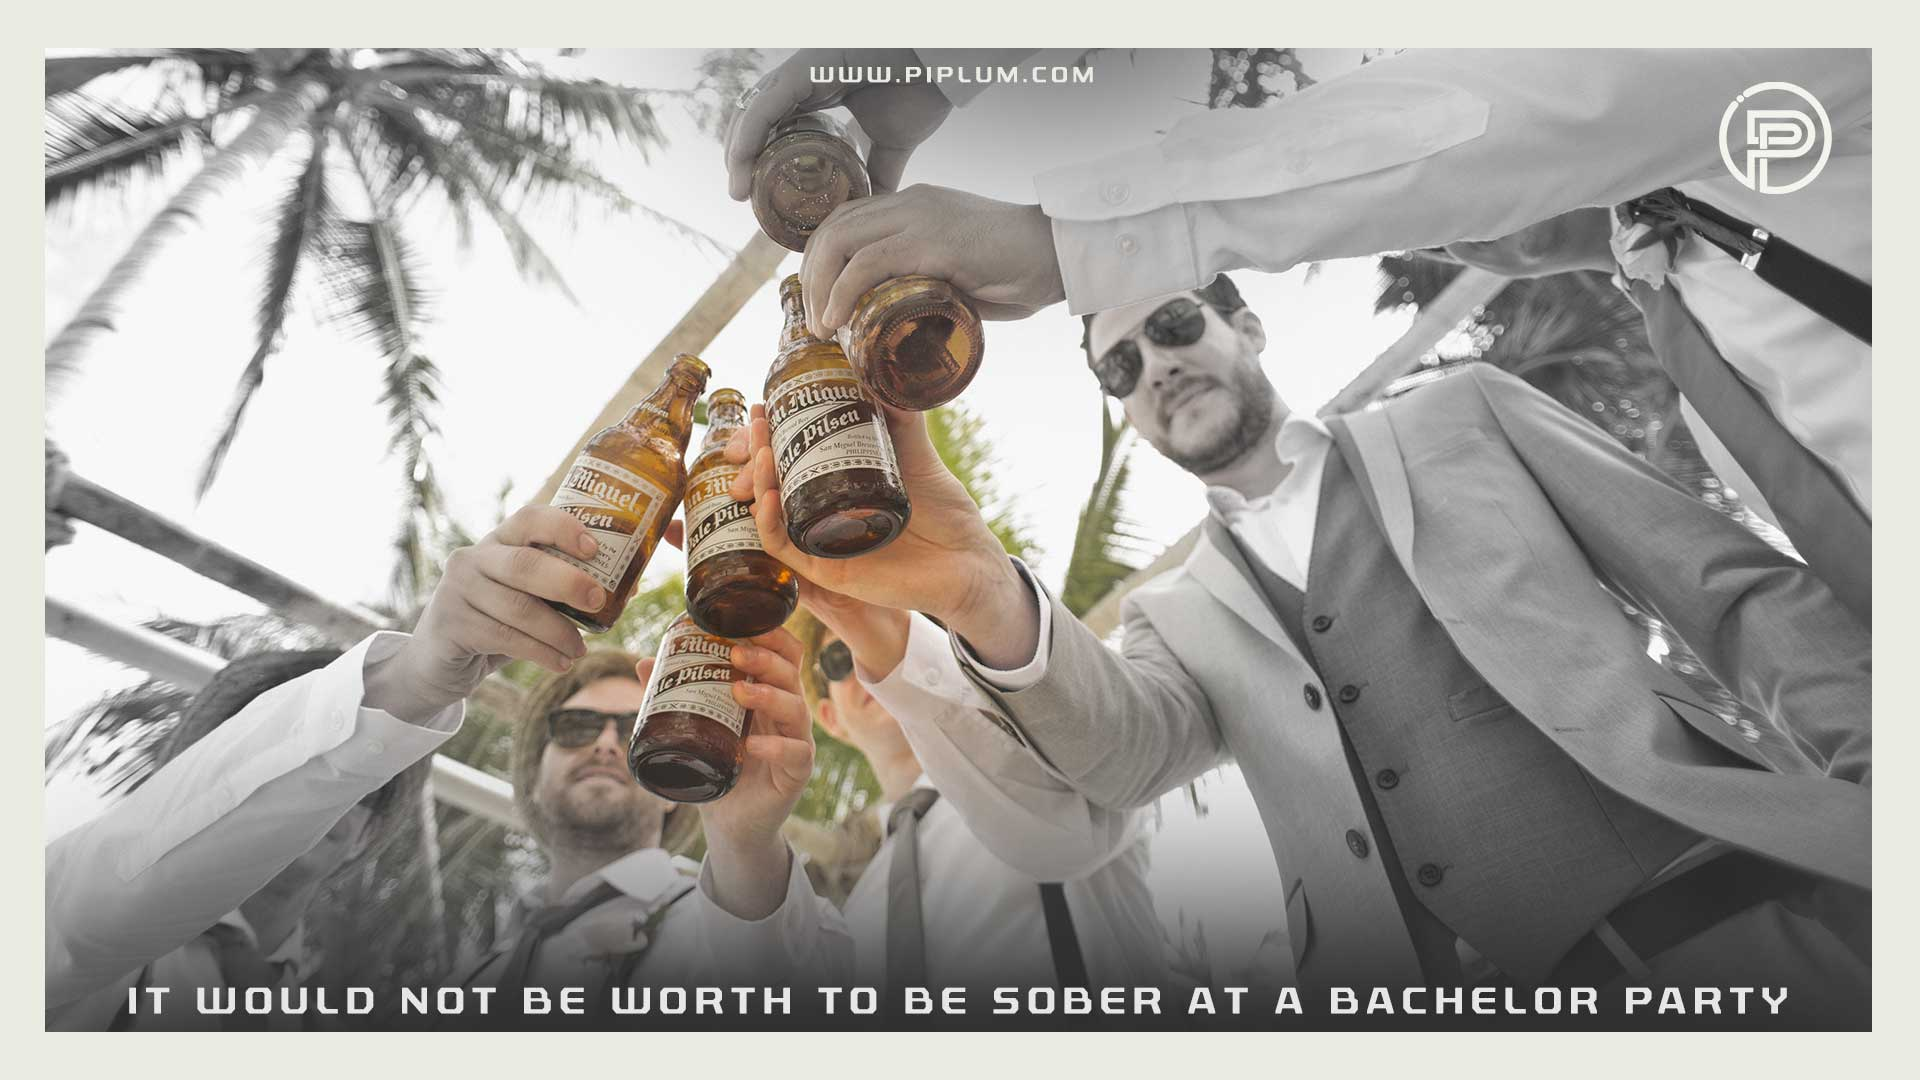 It-would-not-be-worth-being-sober-at-a-bachelor-party-Funny-stag-party-quote